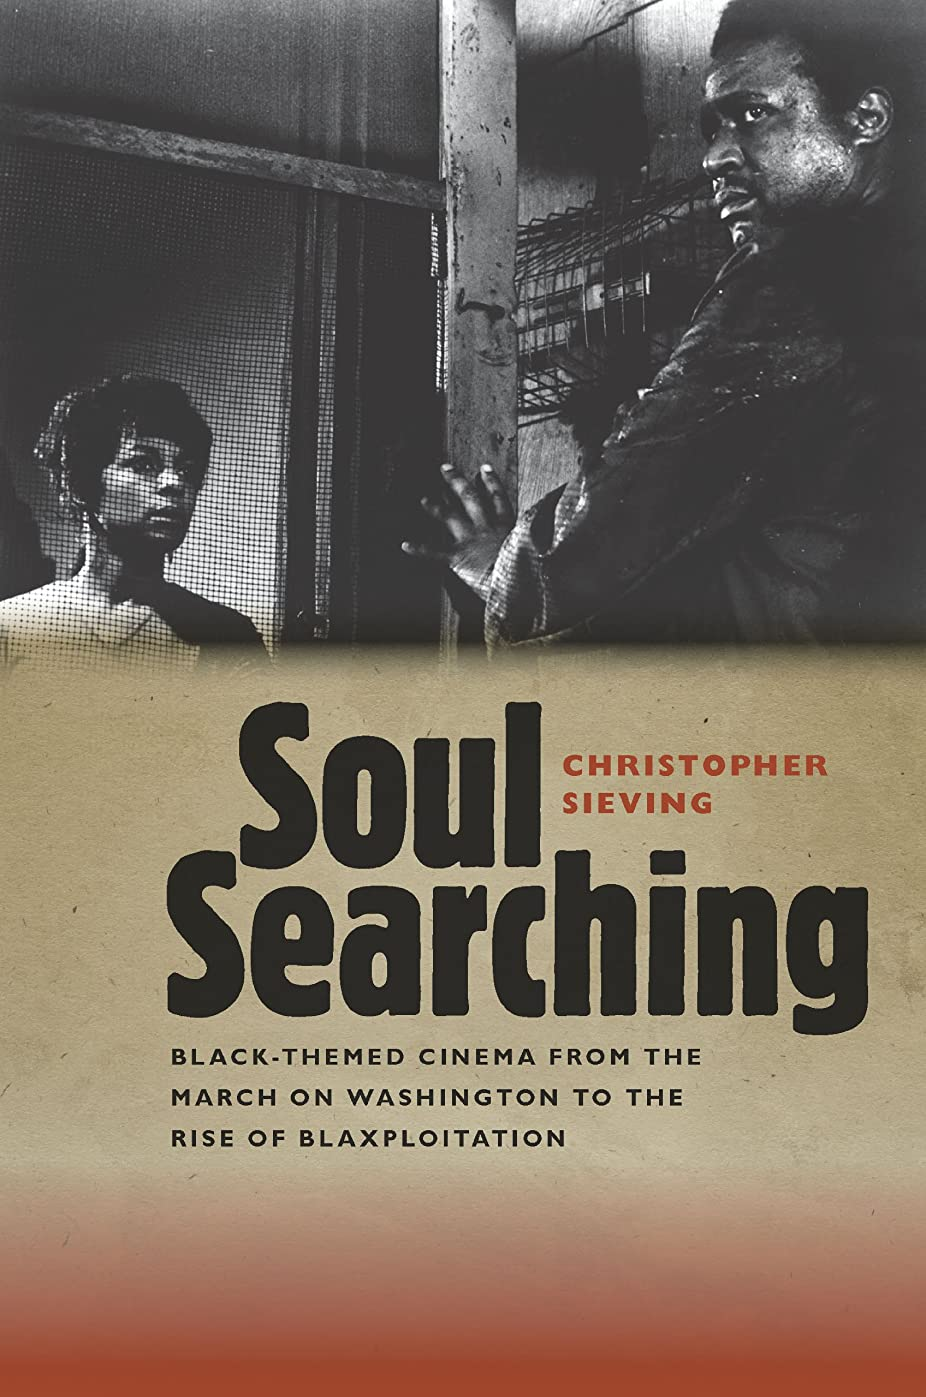 認証わな反応するSoul Searching: Black-Themed Cinema from the March on Washington to the Rise of Blaxploitation (Wesleyan Film) (English Edition)